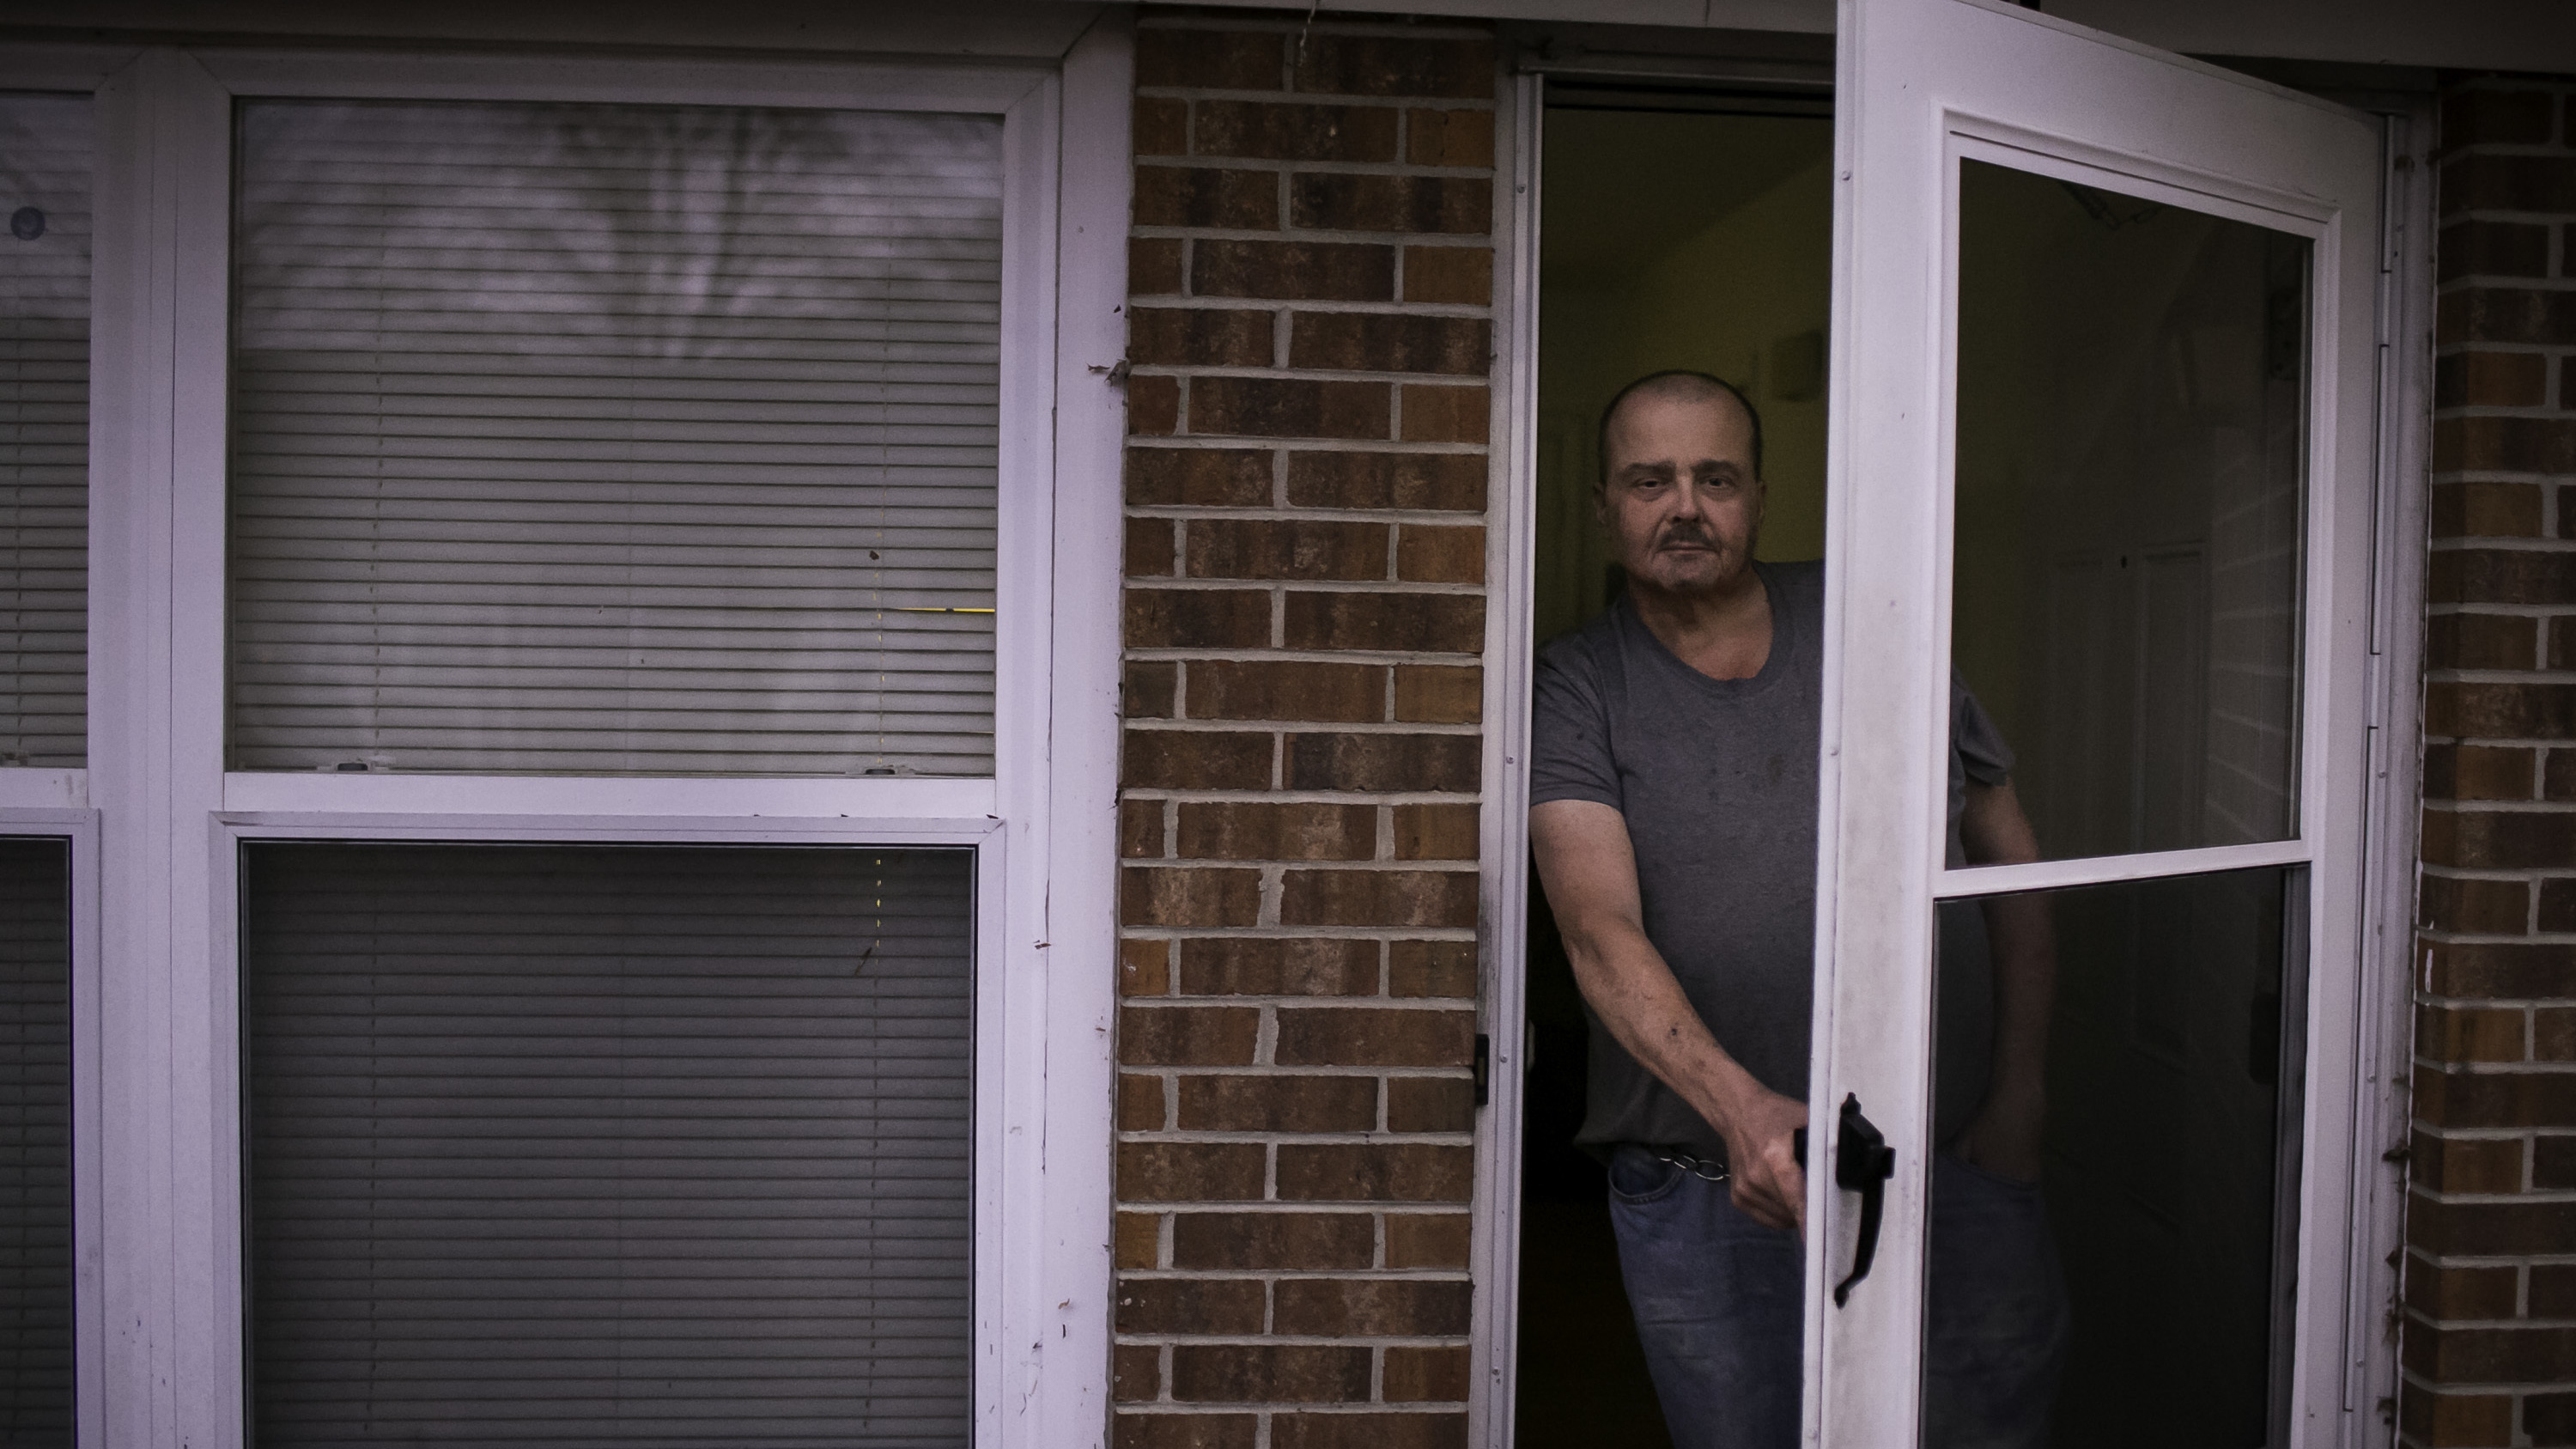 Stacy Holcomb 57 stands in front of his home in Bladenboro N.C. where he says he was approached by a woman during the midterm elections and offered assistance submitting an absentee ballot an occurrence that many in Bladen County have said happened